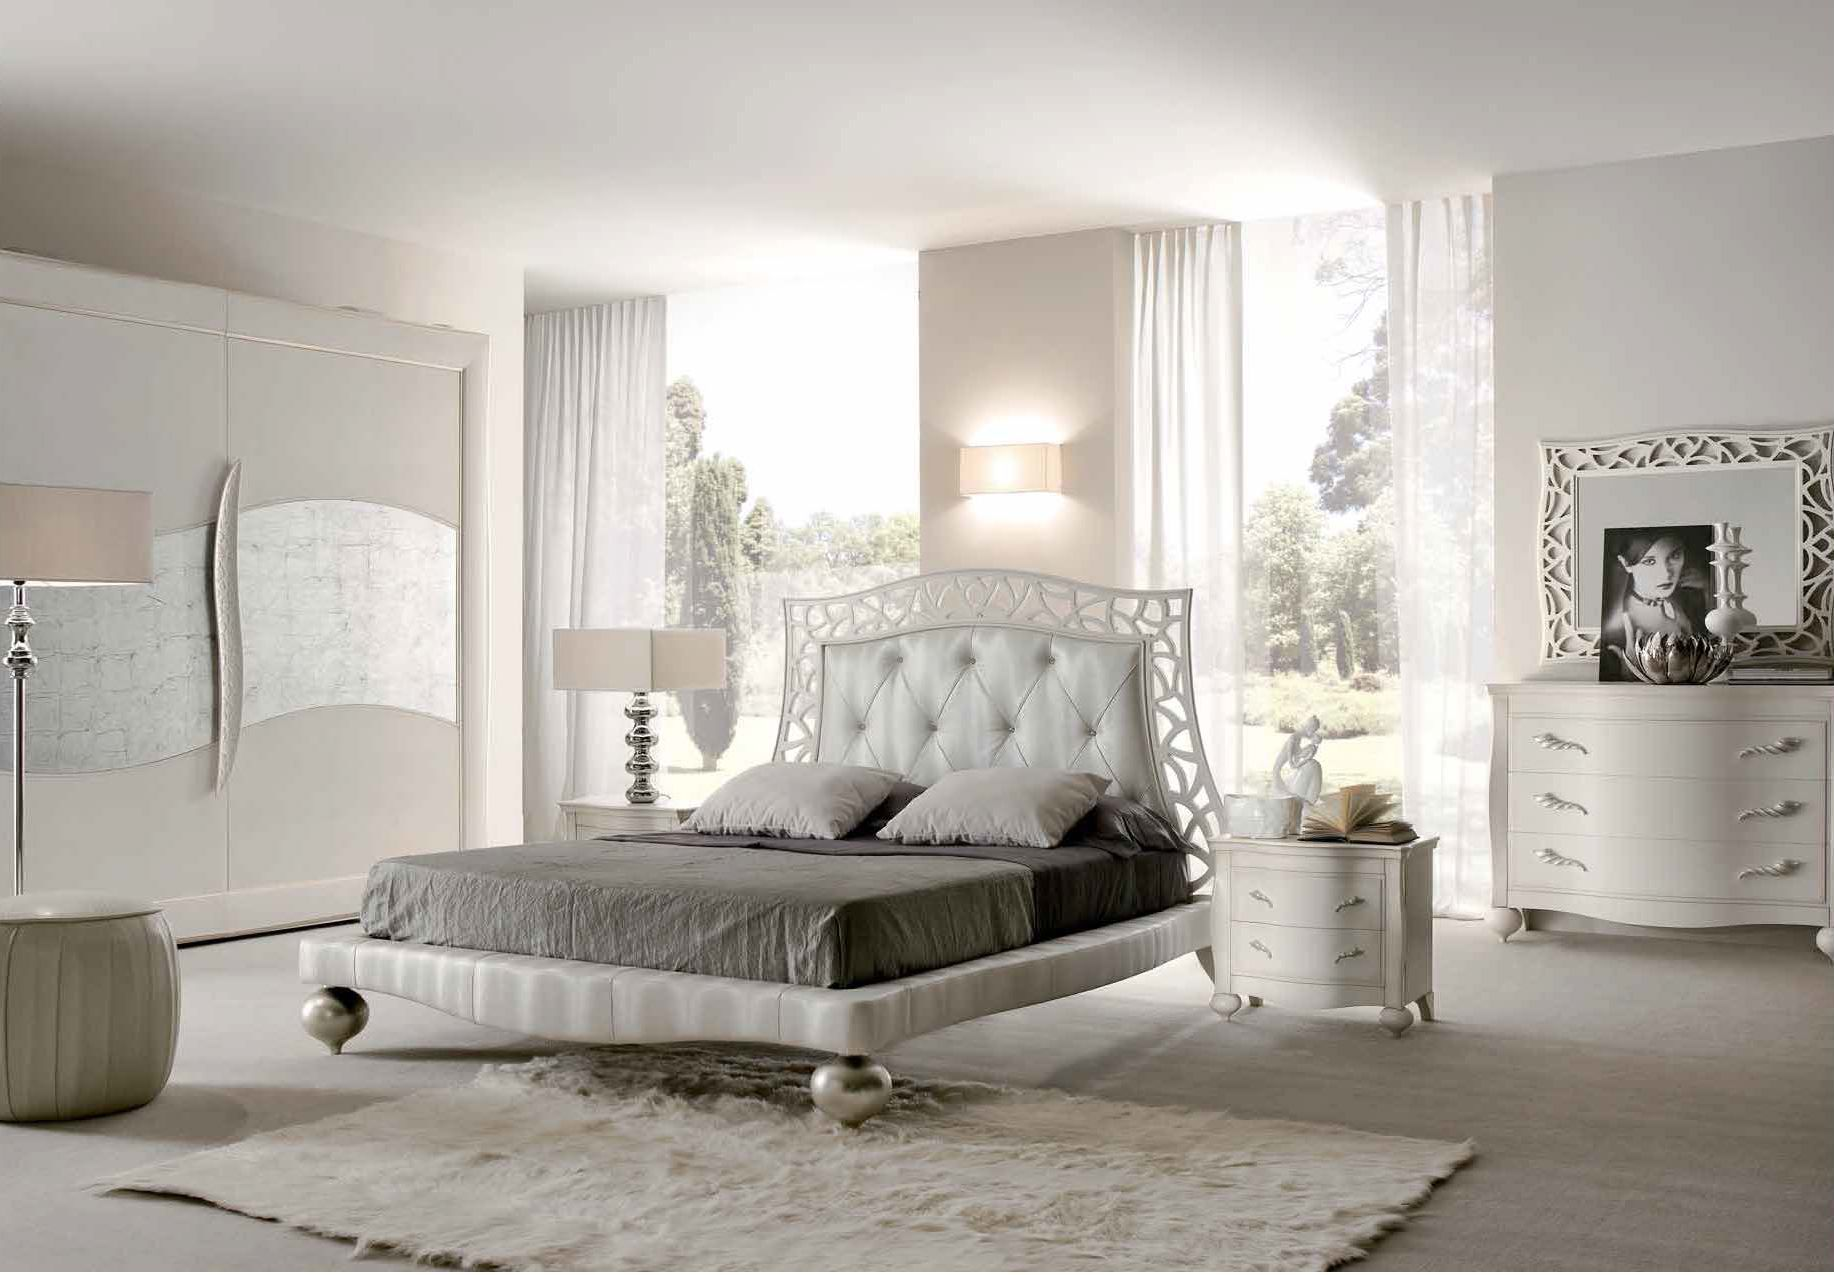 klassische m bel schlafzimmer ferretti ferretti regina di fiori seriedie m bel aus italien. Black Bedroom Furniture Sets. Home Design Ideas